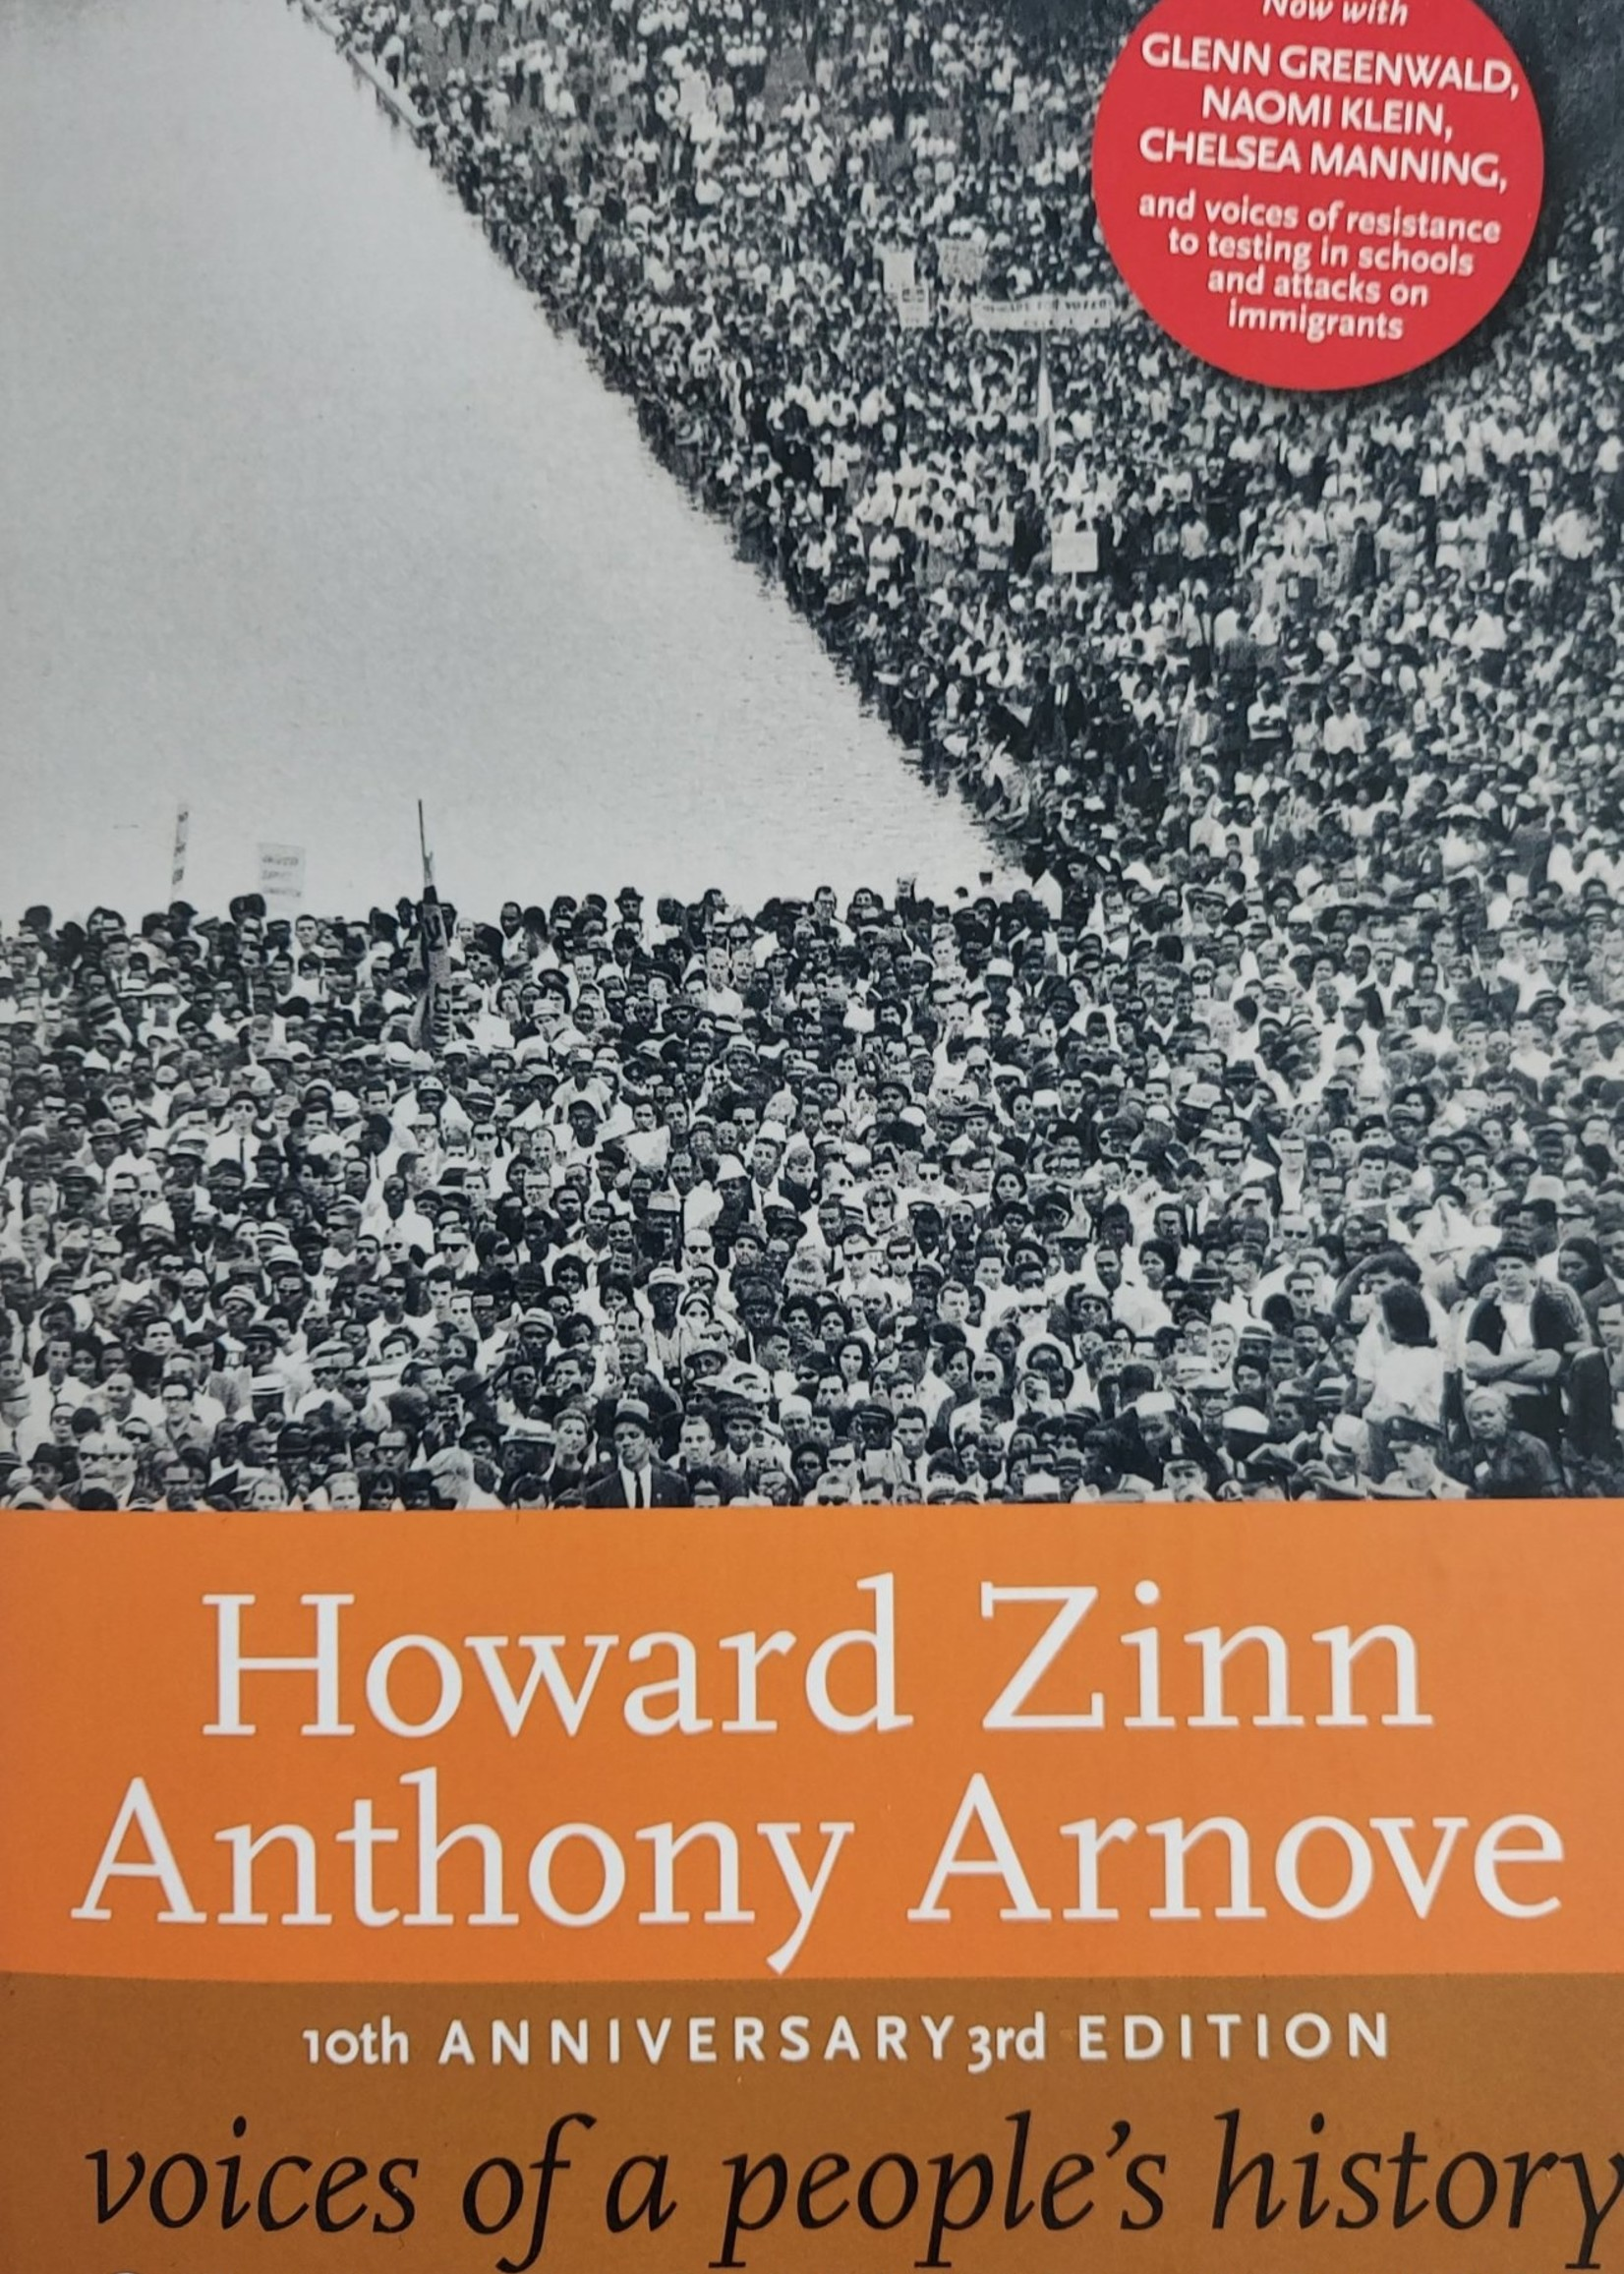 Voices of a People's History of the United States, 10th Anniversary Edition-By HOWARD ZINN and ANTHONY ARNOVE